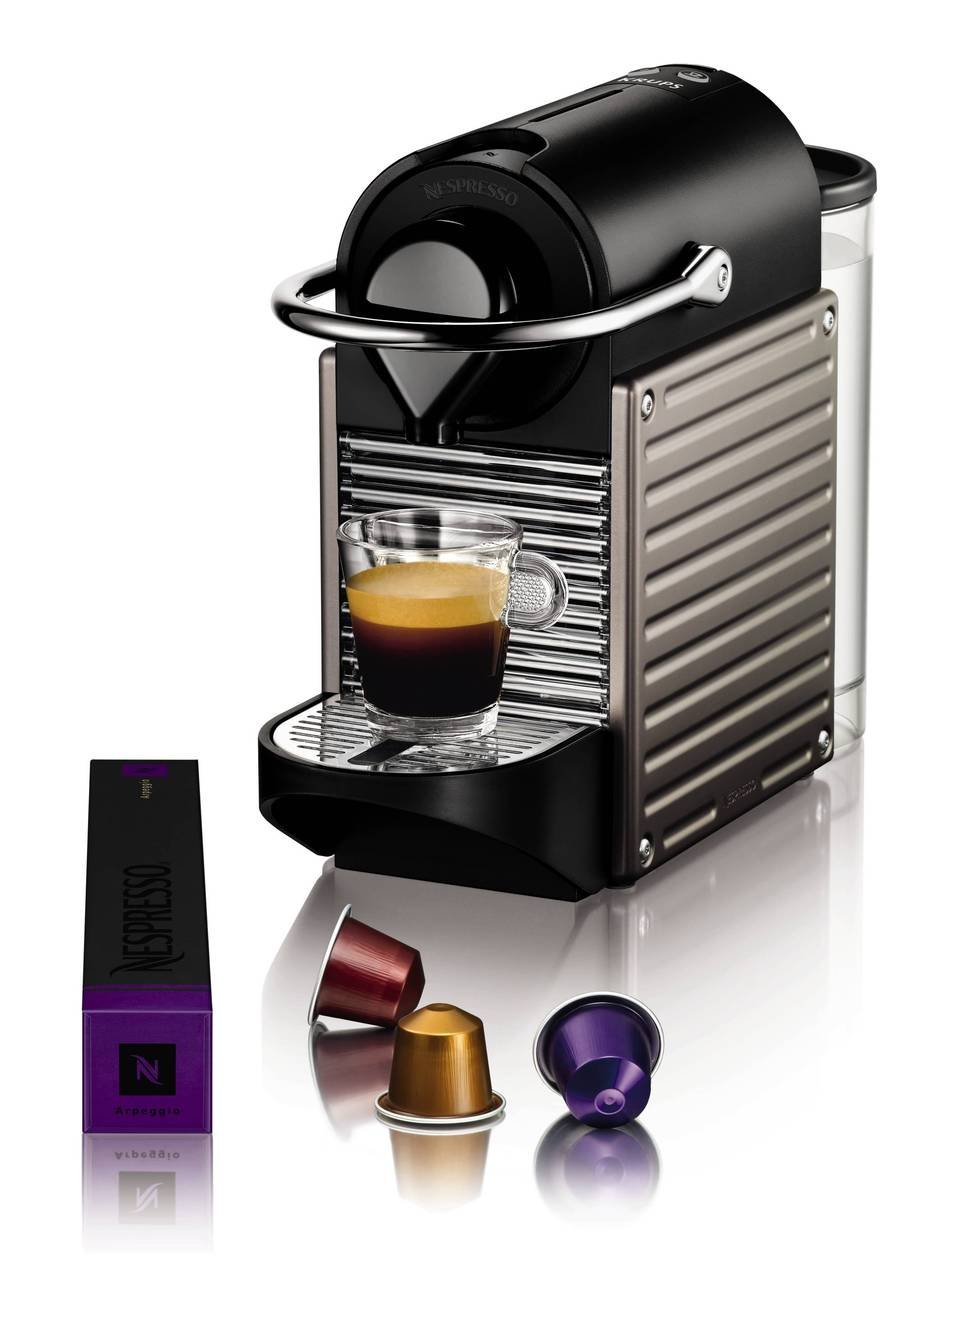 Nespresso Pixie Expresso Maker Review